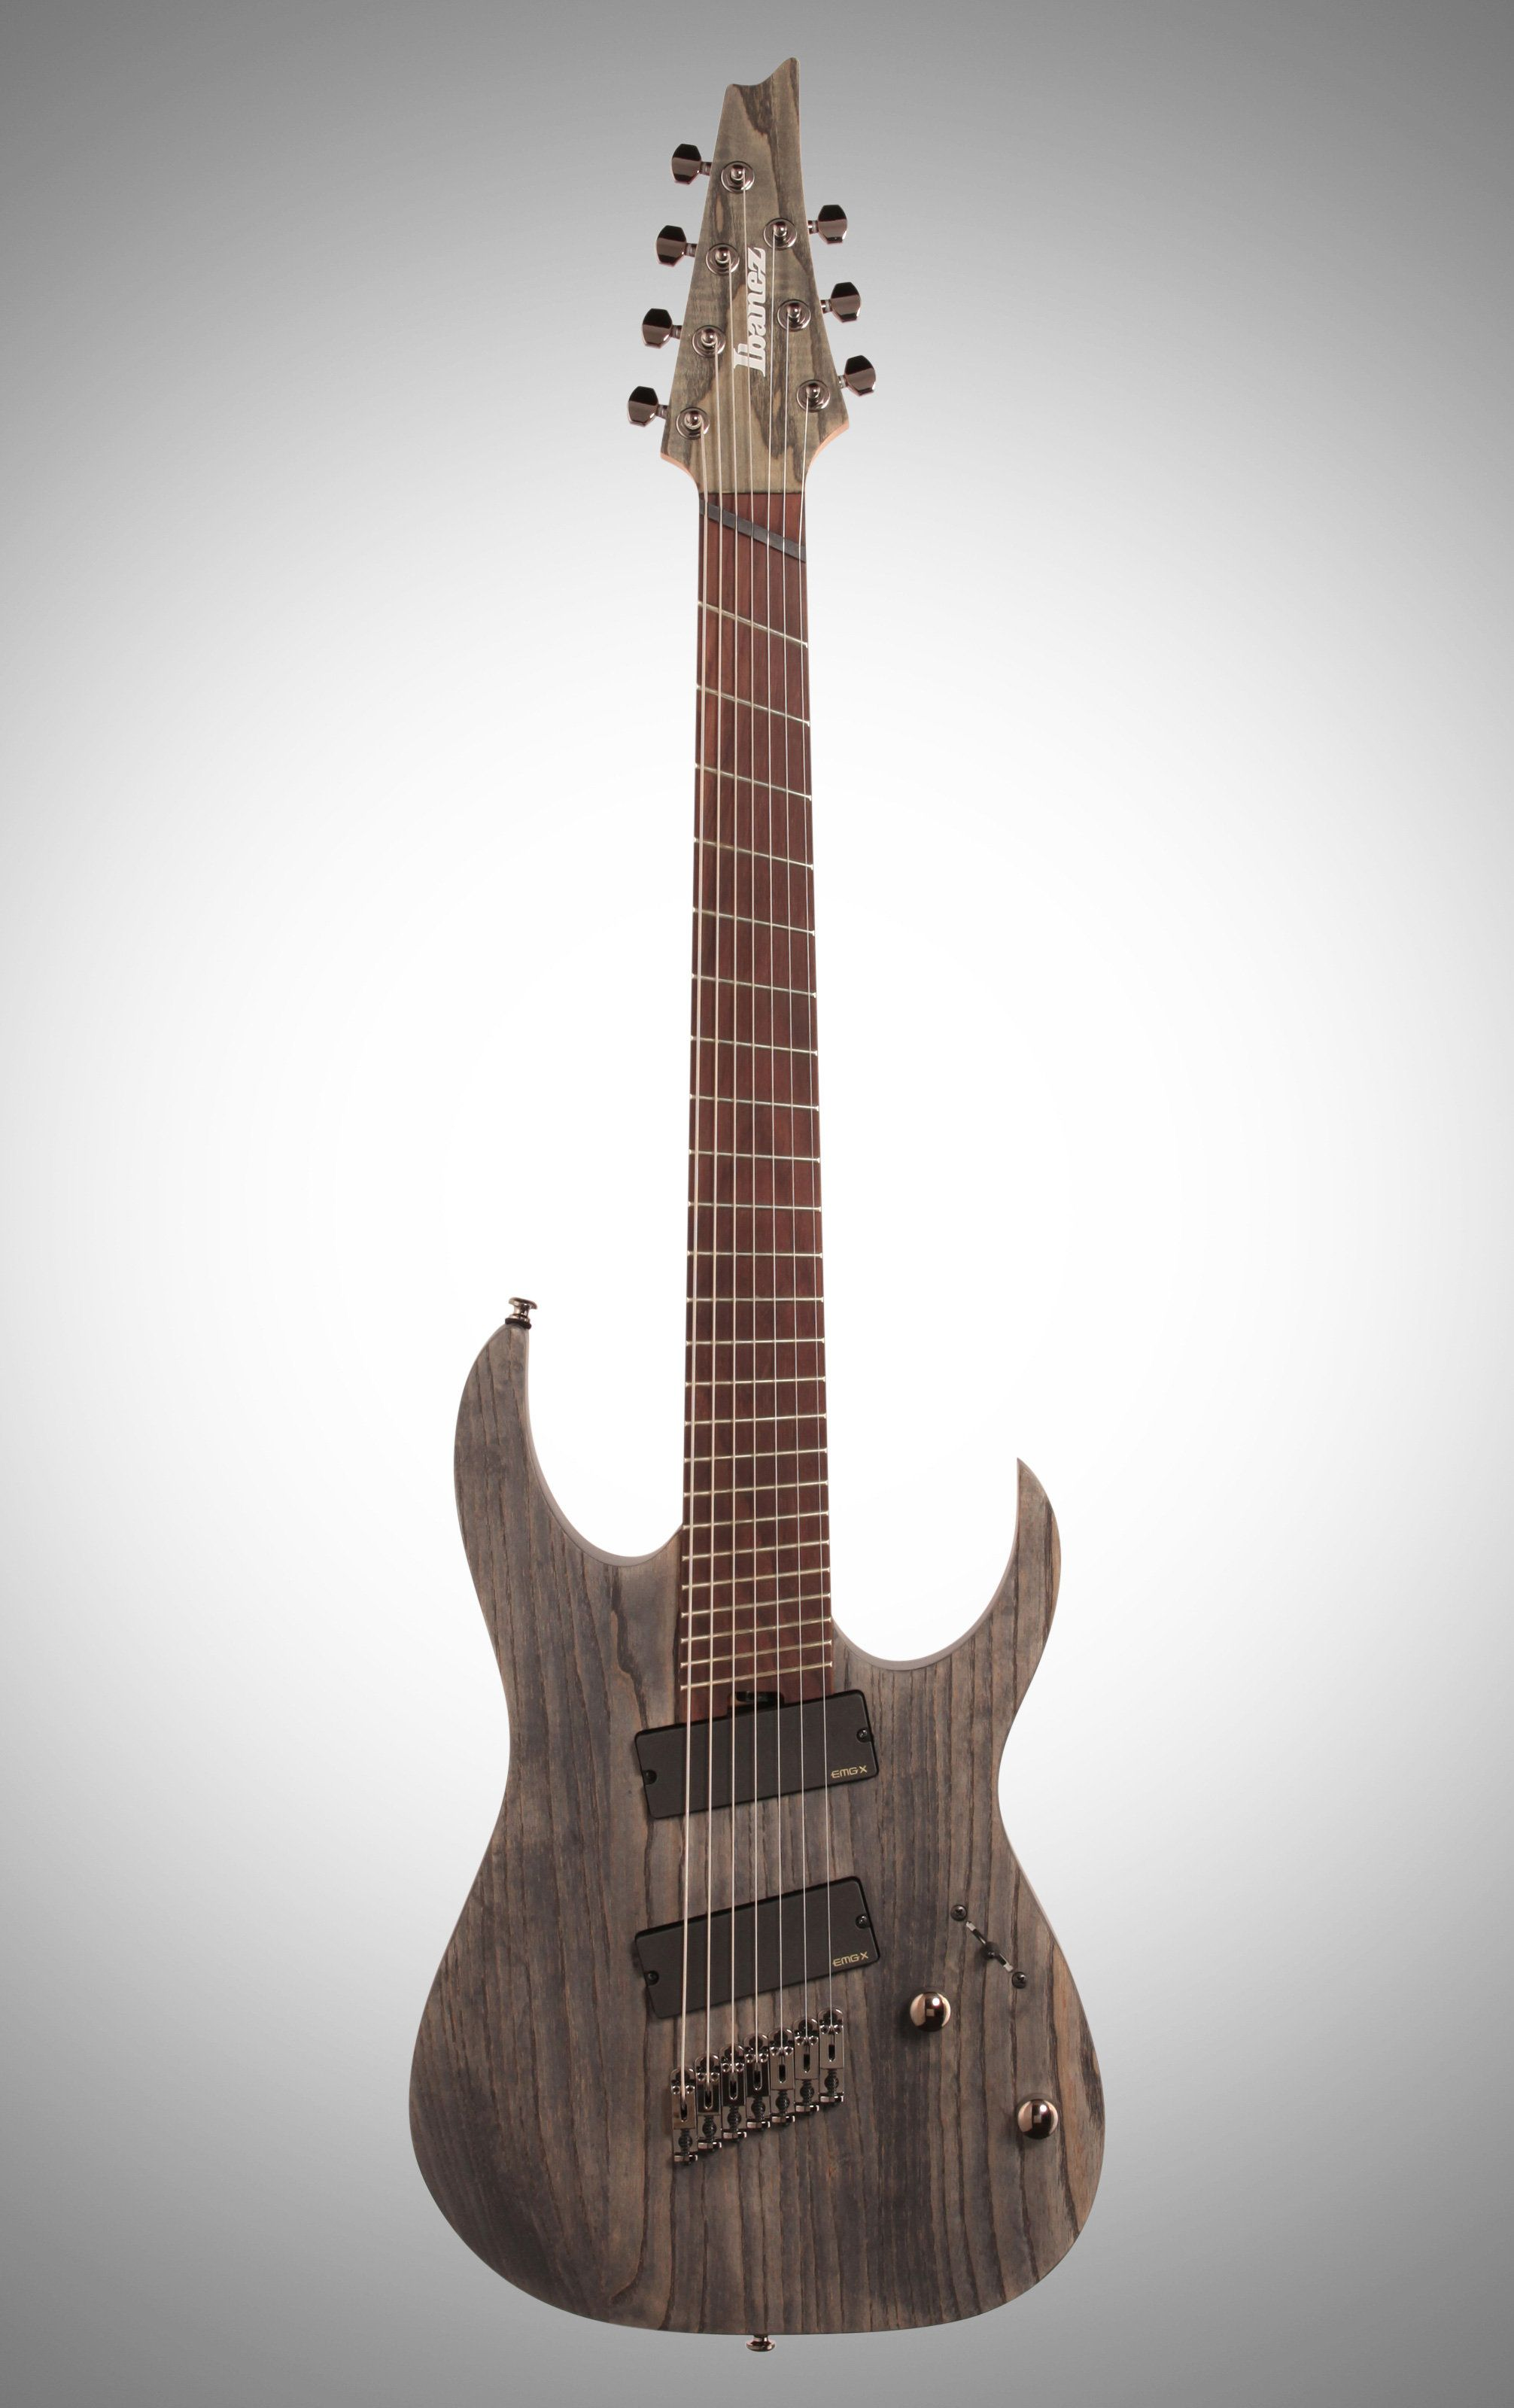 It is an image of Tactueux Ibanez Iron Label Rgif7